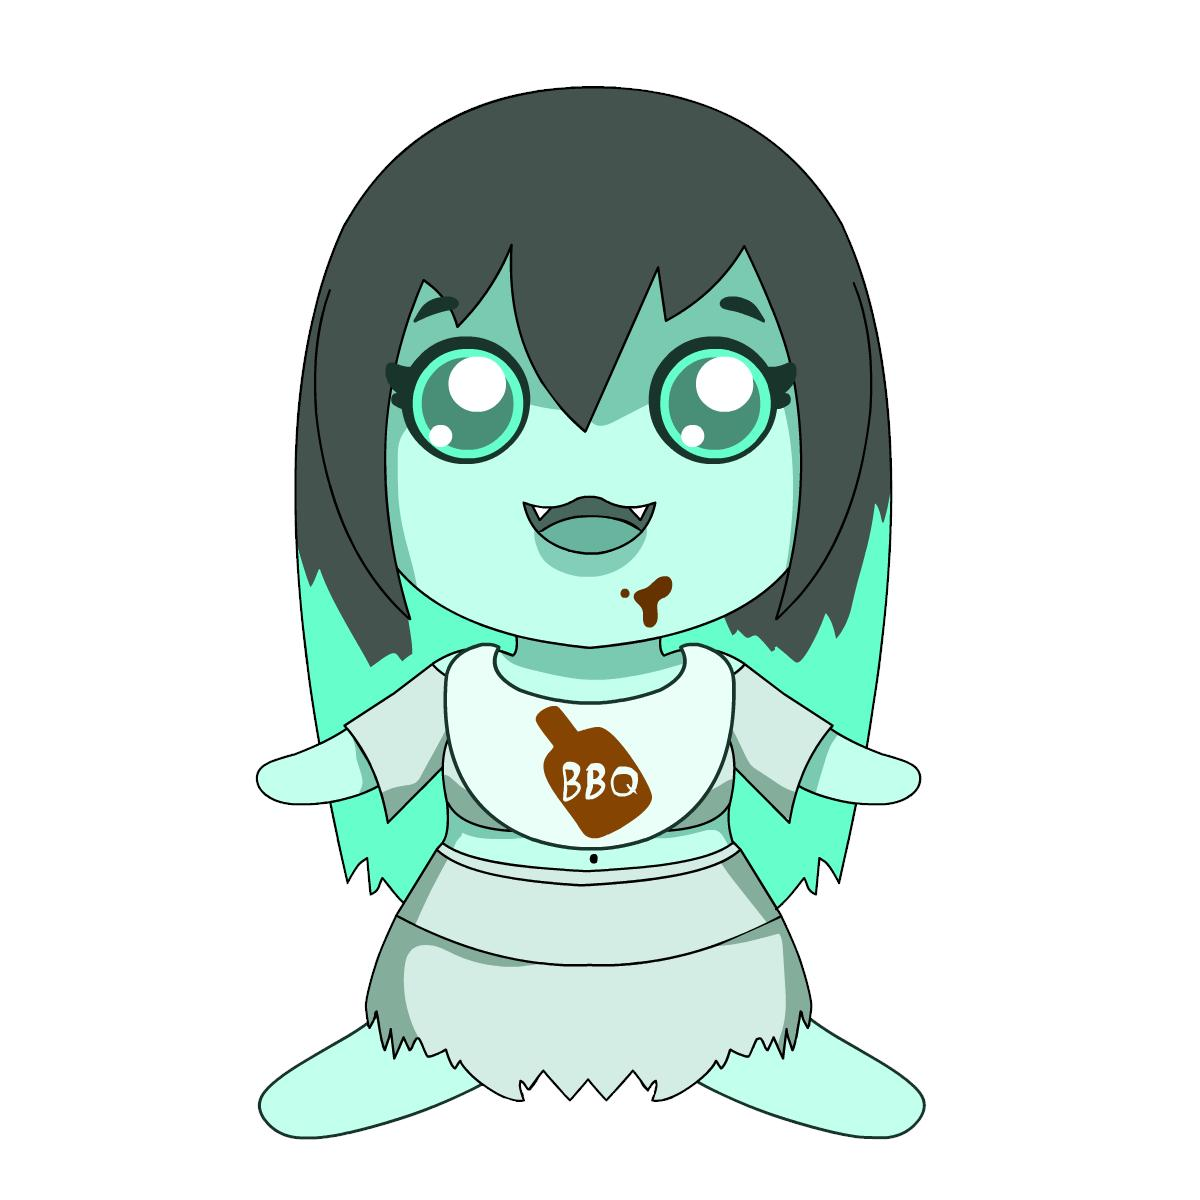 Cute Chibi Porn - Just can't stop eating all that Barbecue. #BBQ #EllaTheGhost ...